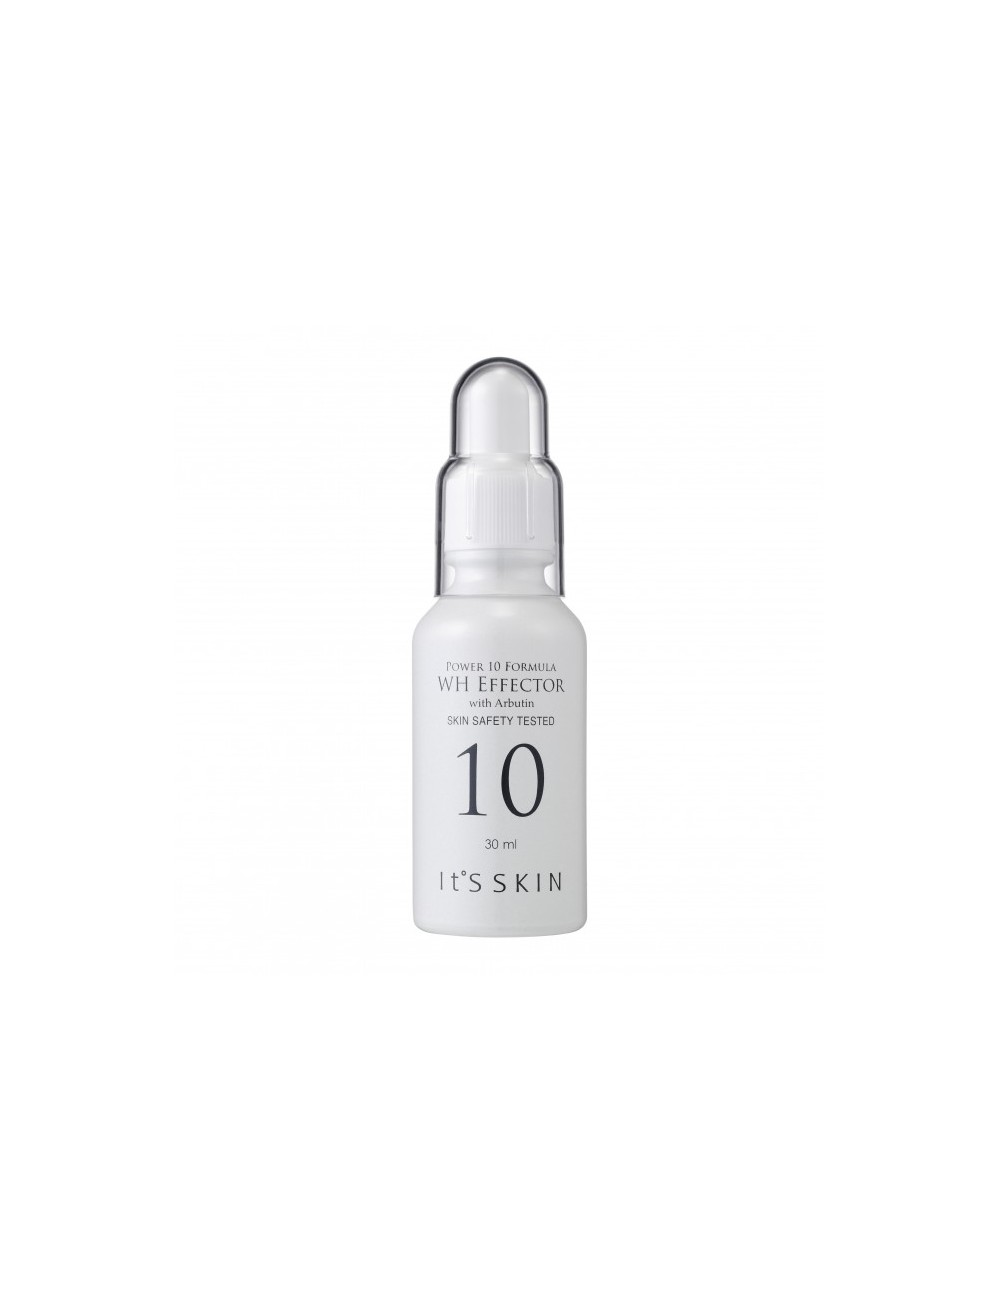 Serum Anti Manchas con Arbutina It's Skin - Power 10 Formula WH Effector  30ml